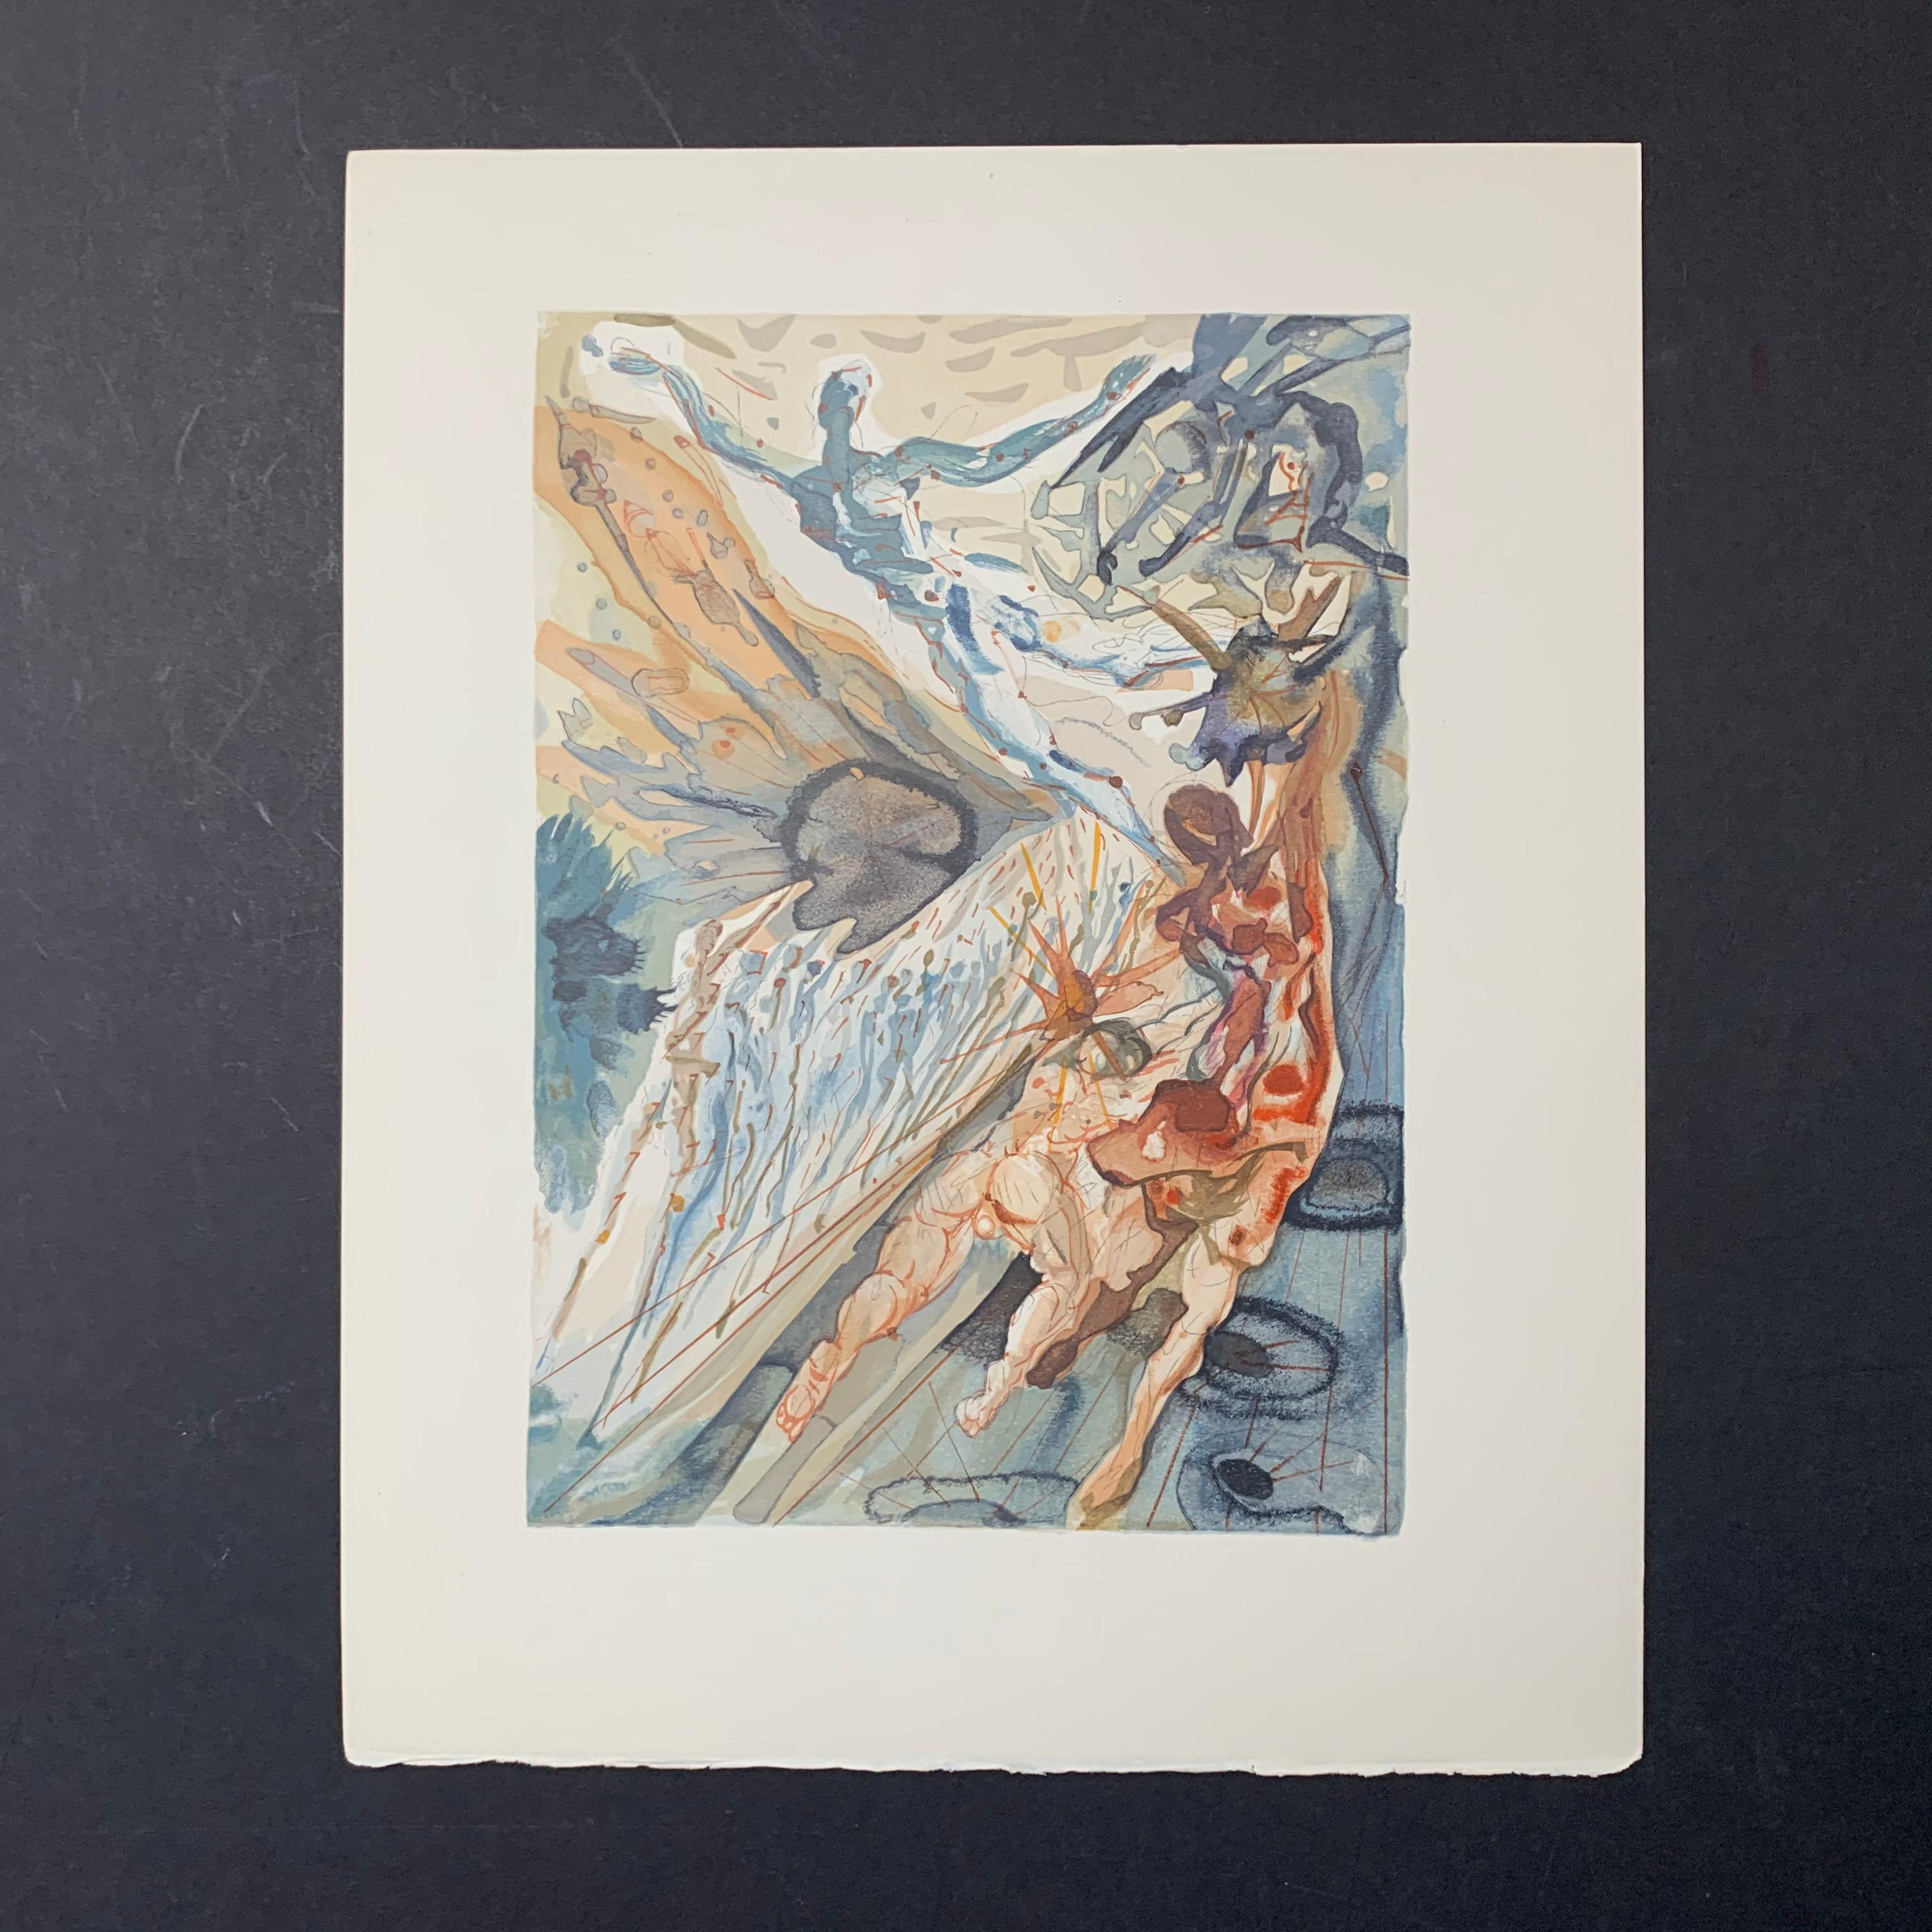 """Salvador Dali's """"Encounter With Two Groups Of The Lusty Ones"""" Print"""